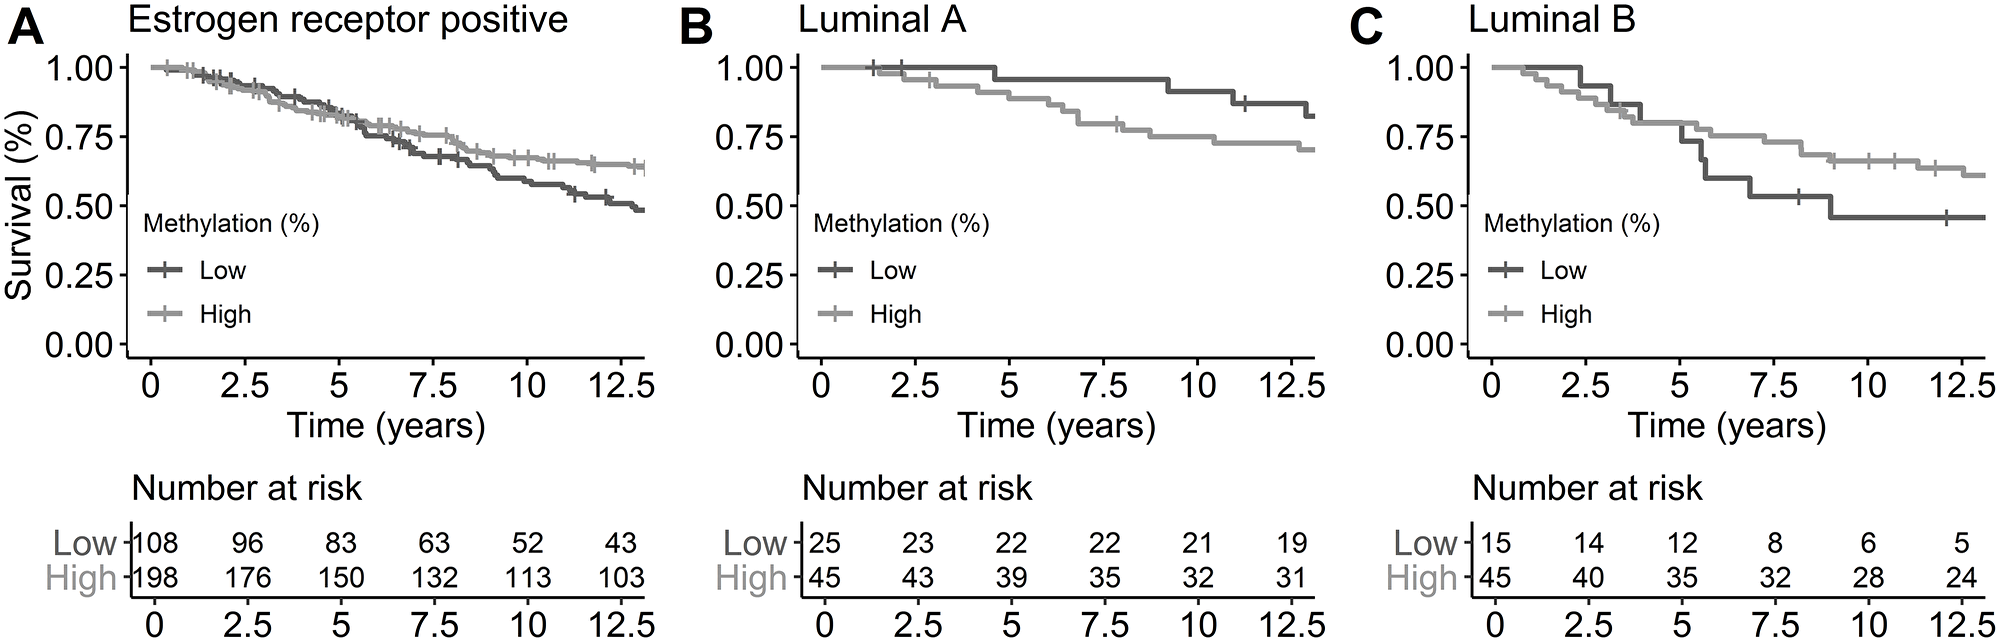 Breast cancer-specific survival by ER status and subtypes by miR-190b methylation status.